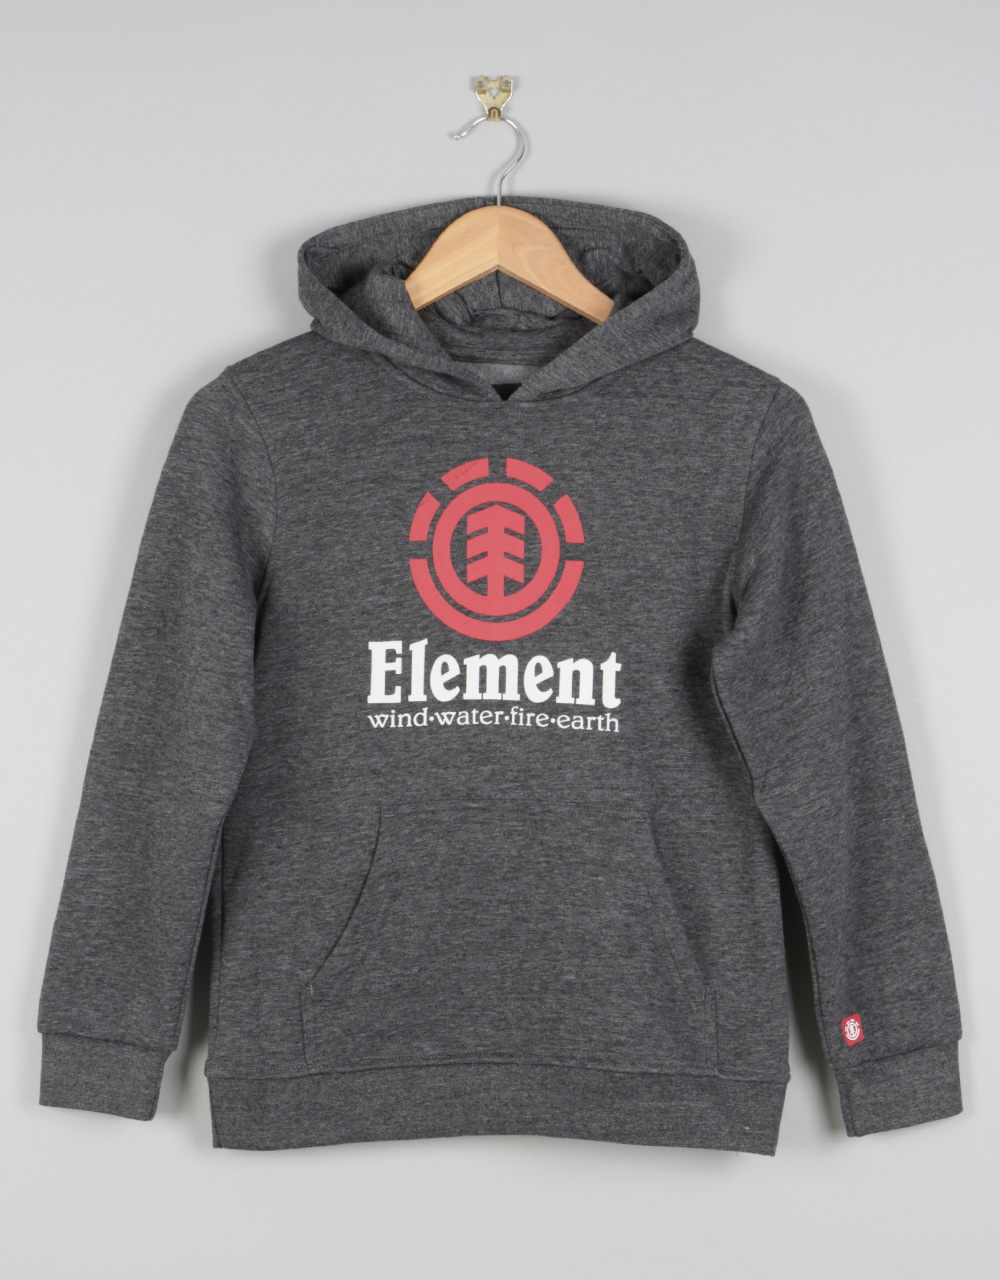 a4705670ca64 Element Vertical Boys Pullover Hoodie - Charcoal Heather